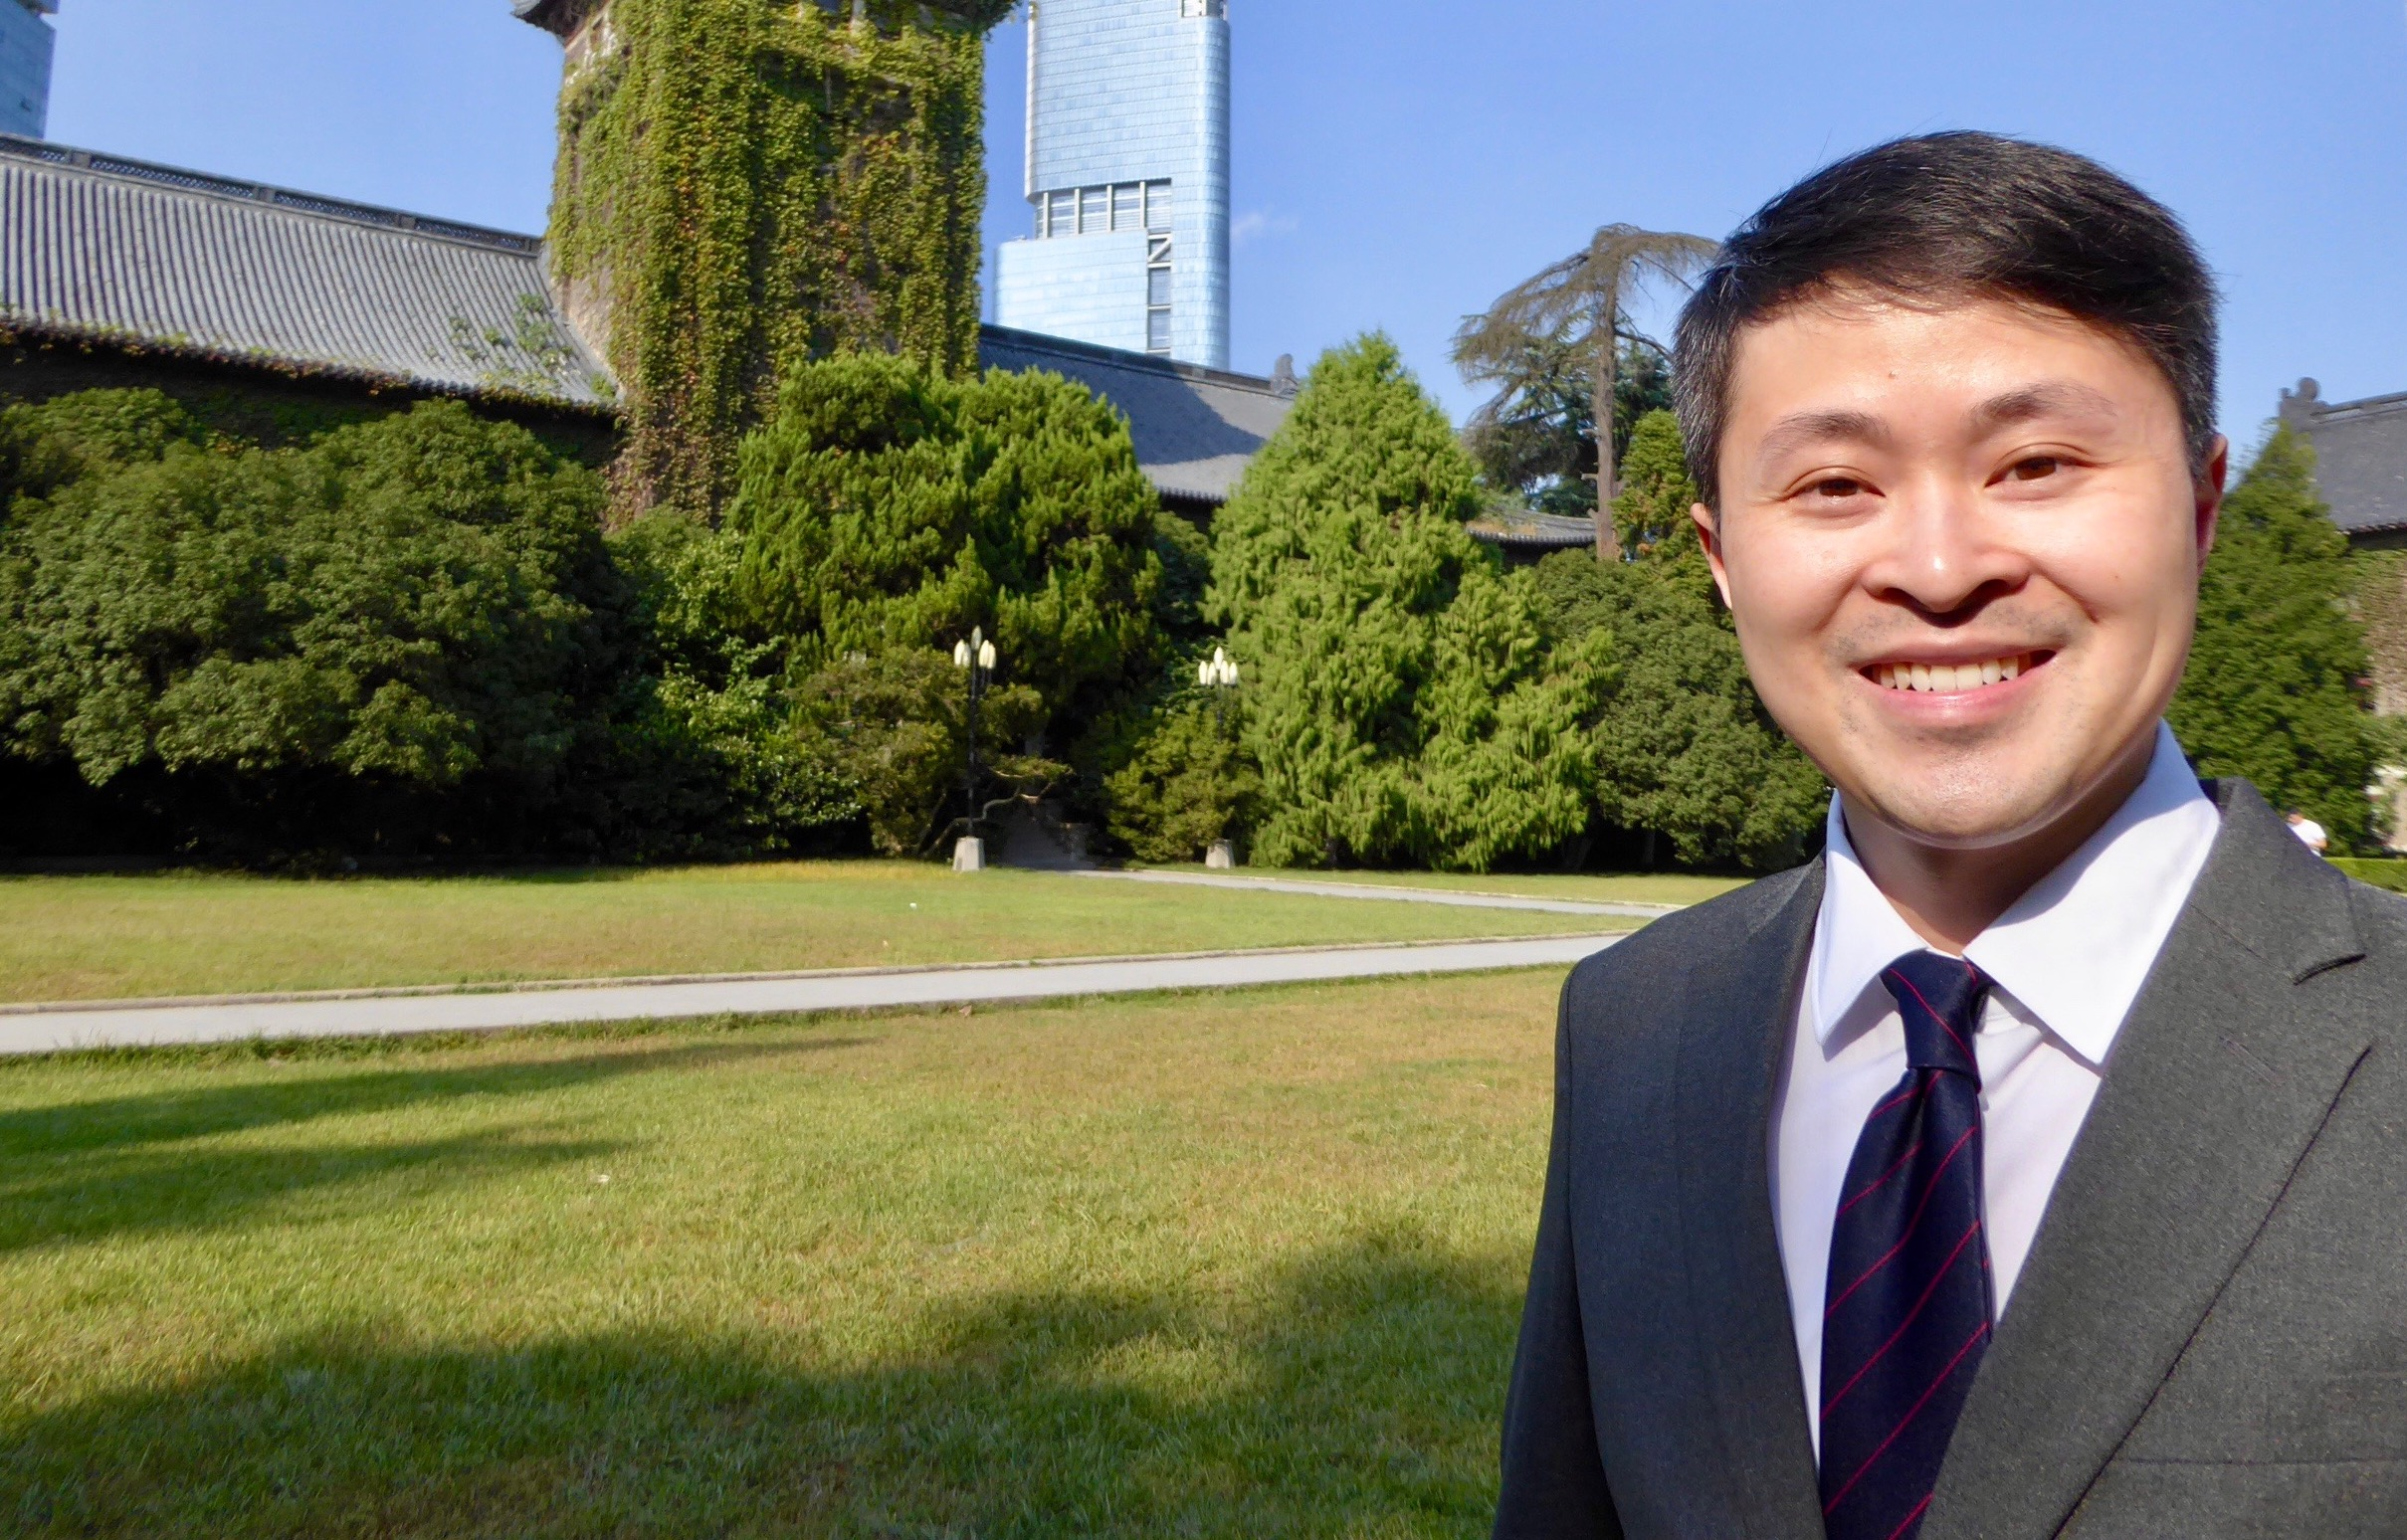 Fulbright Fellow Dr. Chris Tong, Nanjing University